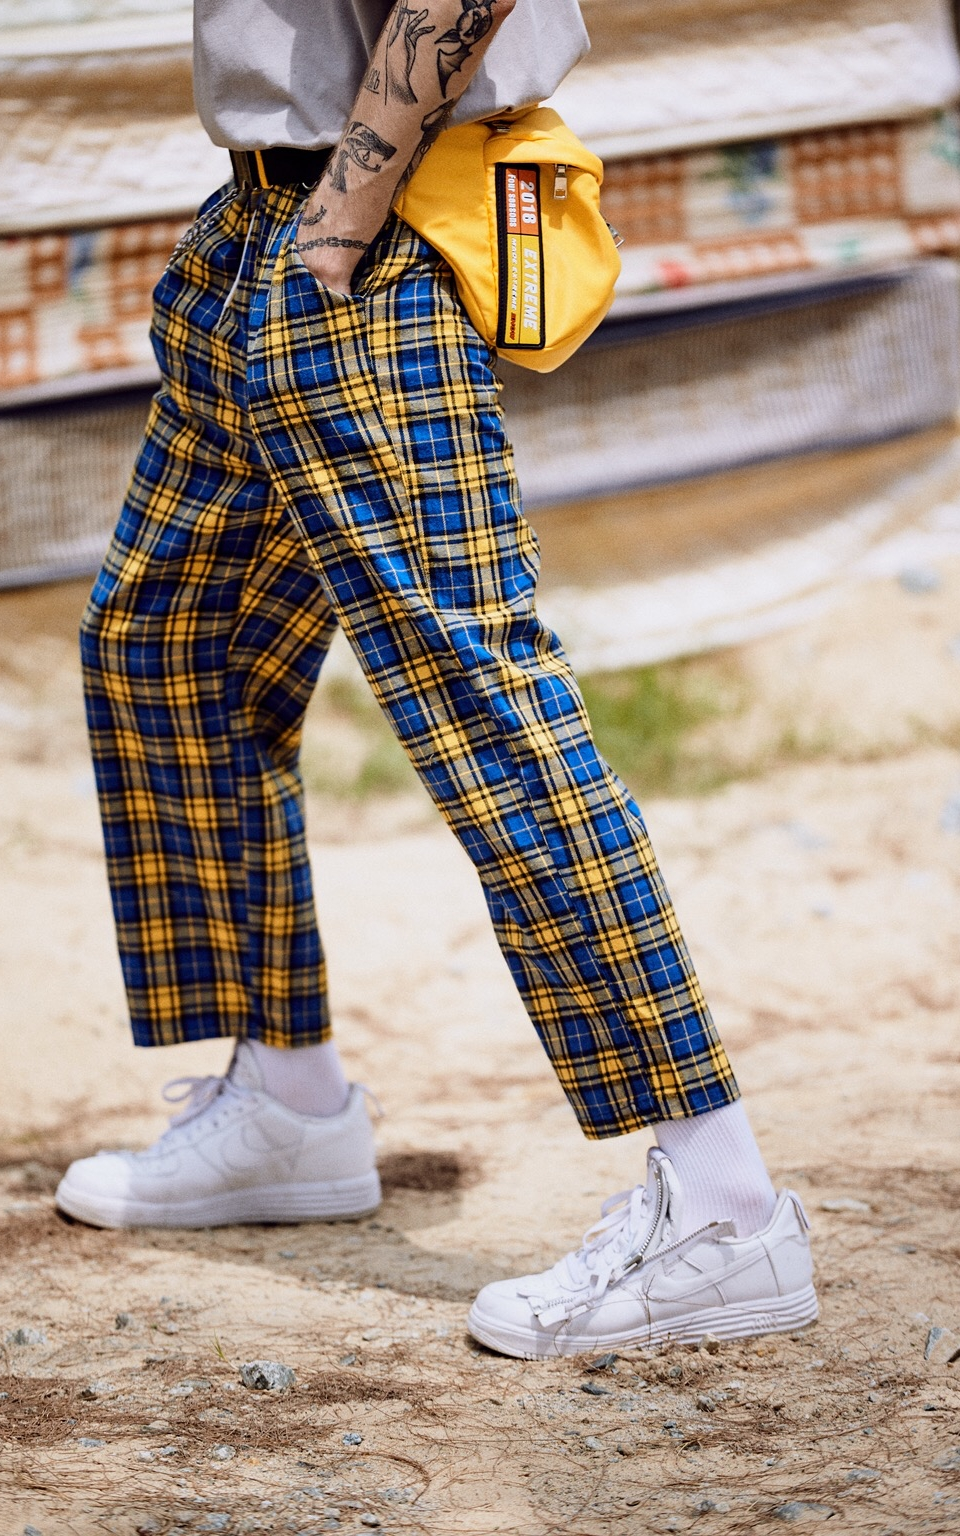 EXTREME PLAID PANTS WITH CHAIN YELLOW GREEN